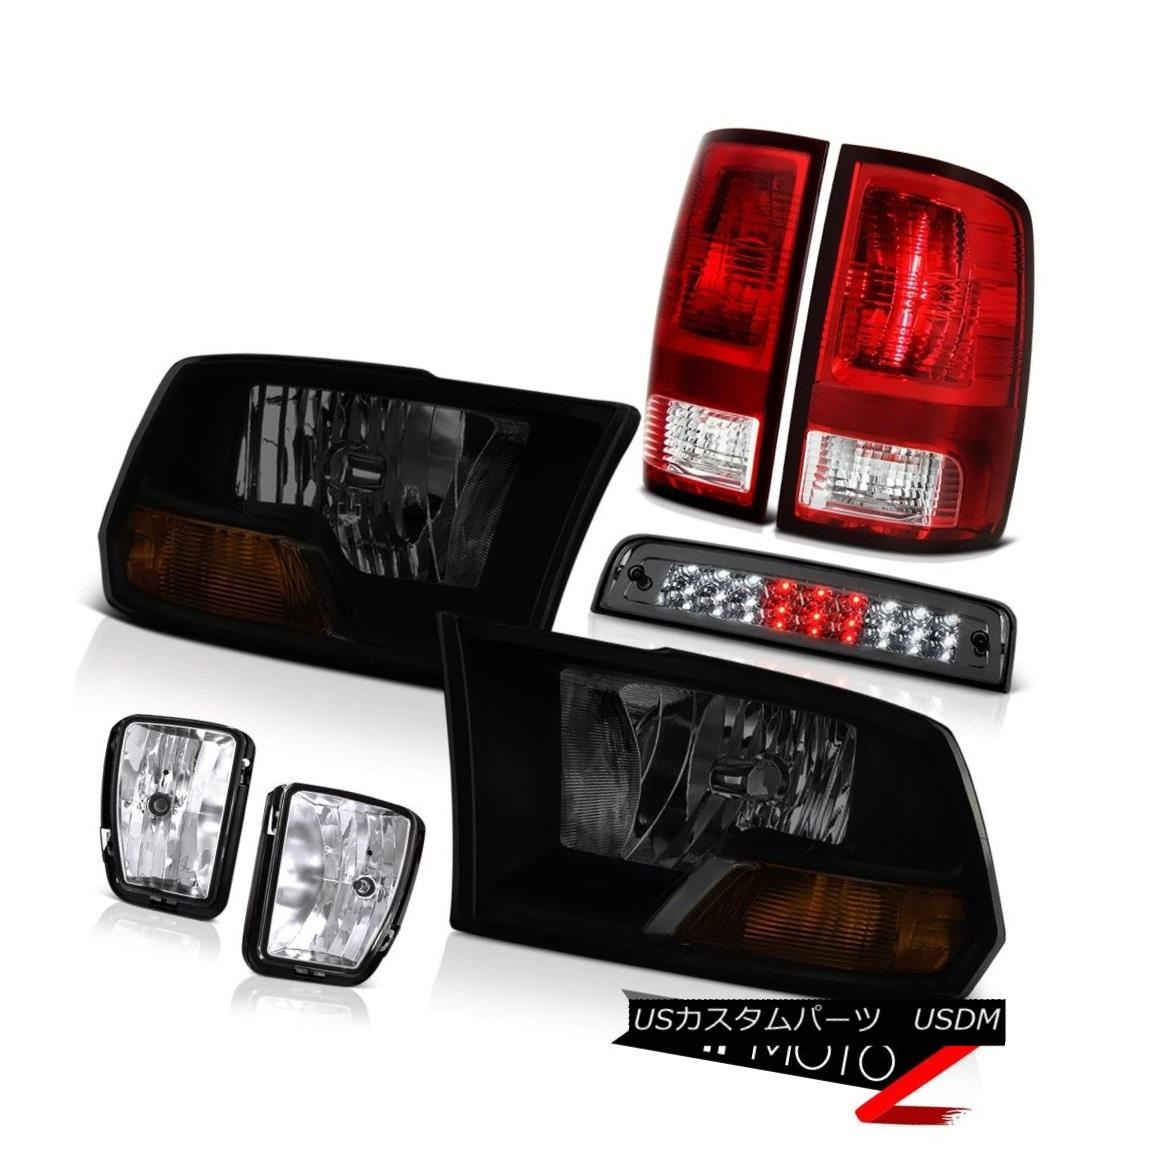 ヘッドライト 13-18 Dodge Ram 1500 Laramie 3RD Brake Light Fog Lights Taillamps Headlights LED 13-18 Dodge Ram 1500 Laramie 3RDブレーキライトフォグライトタイルランプヘッドライトLED